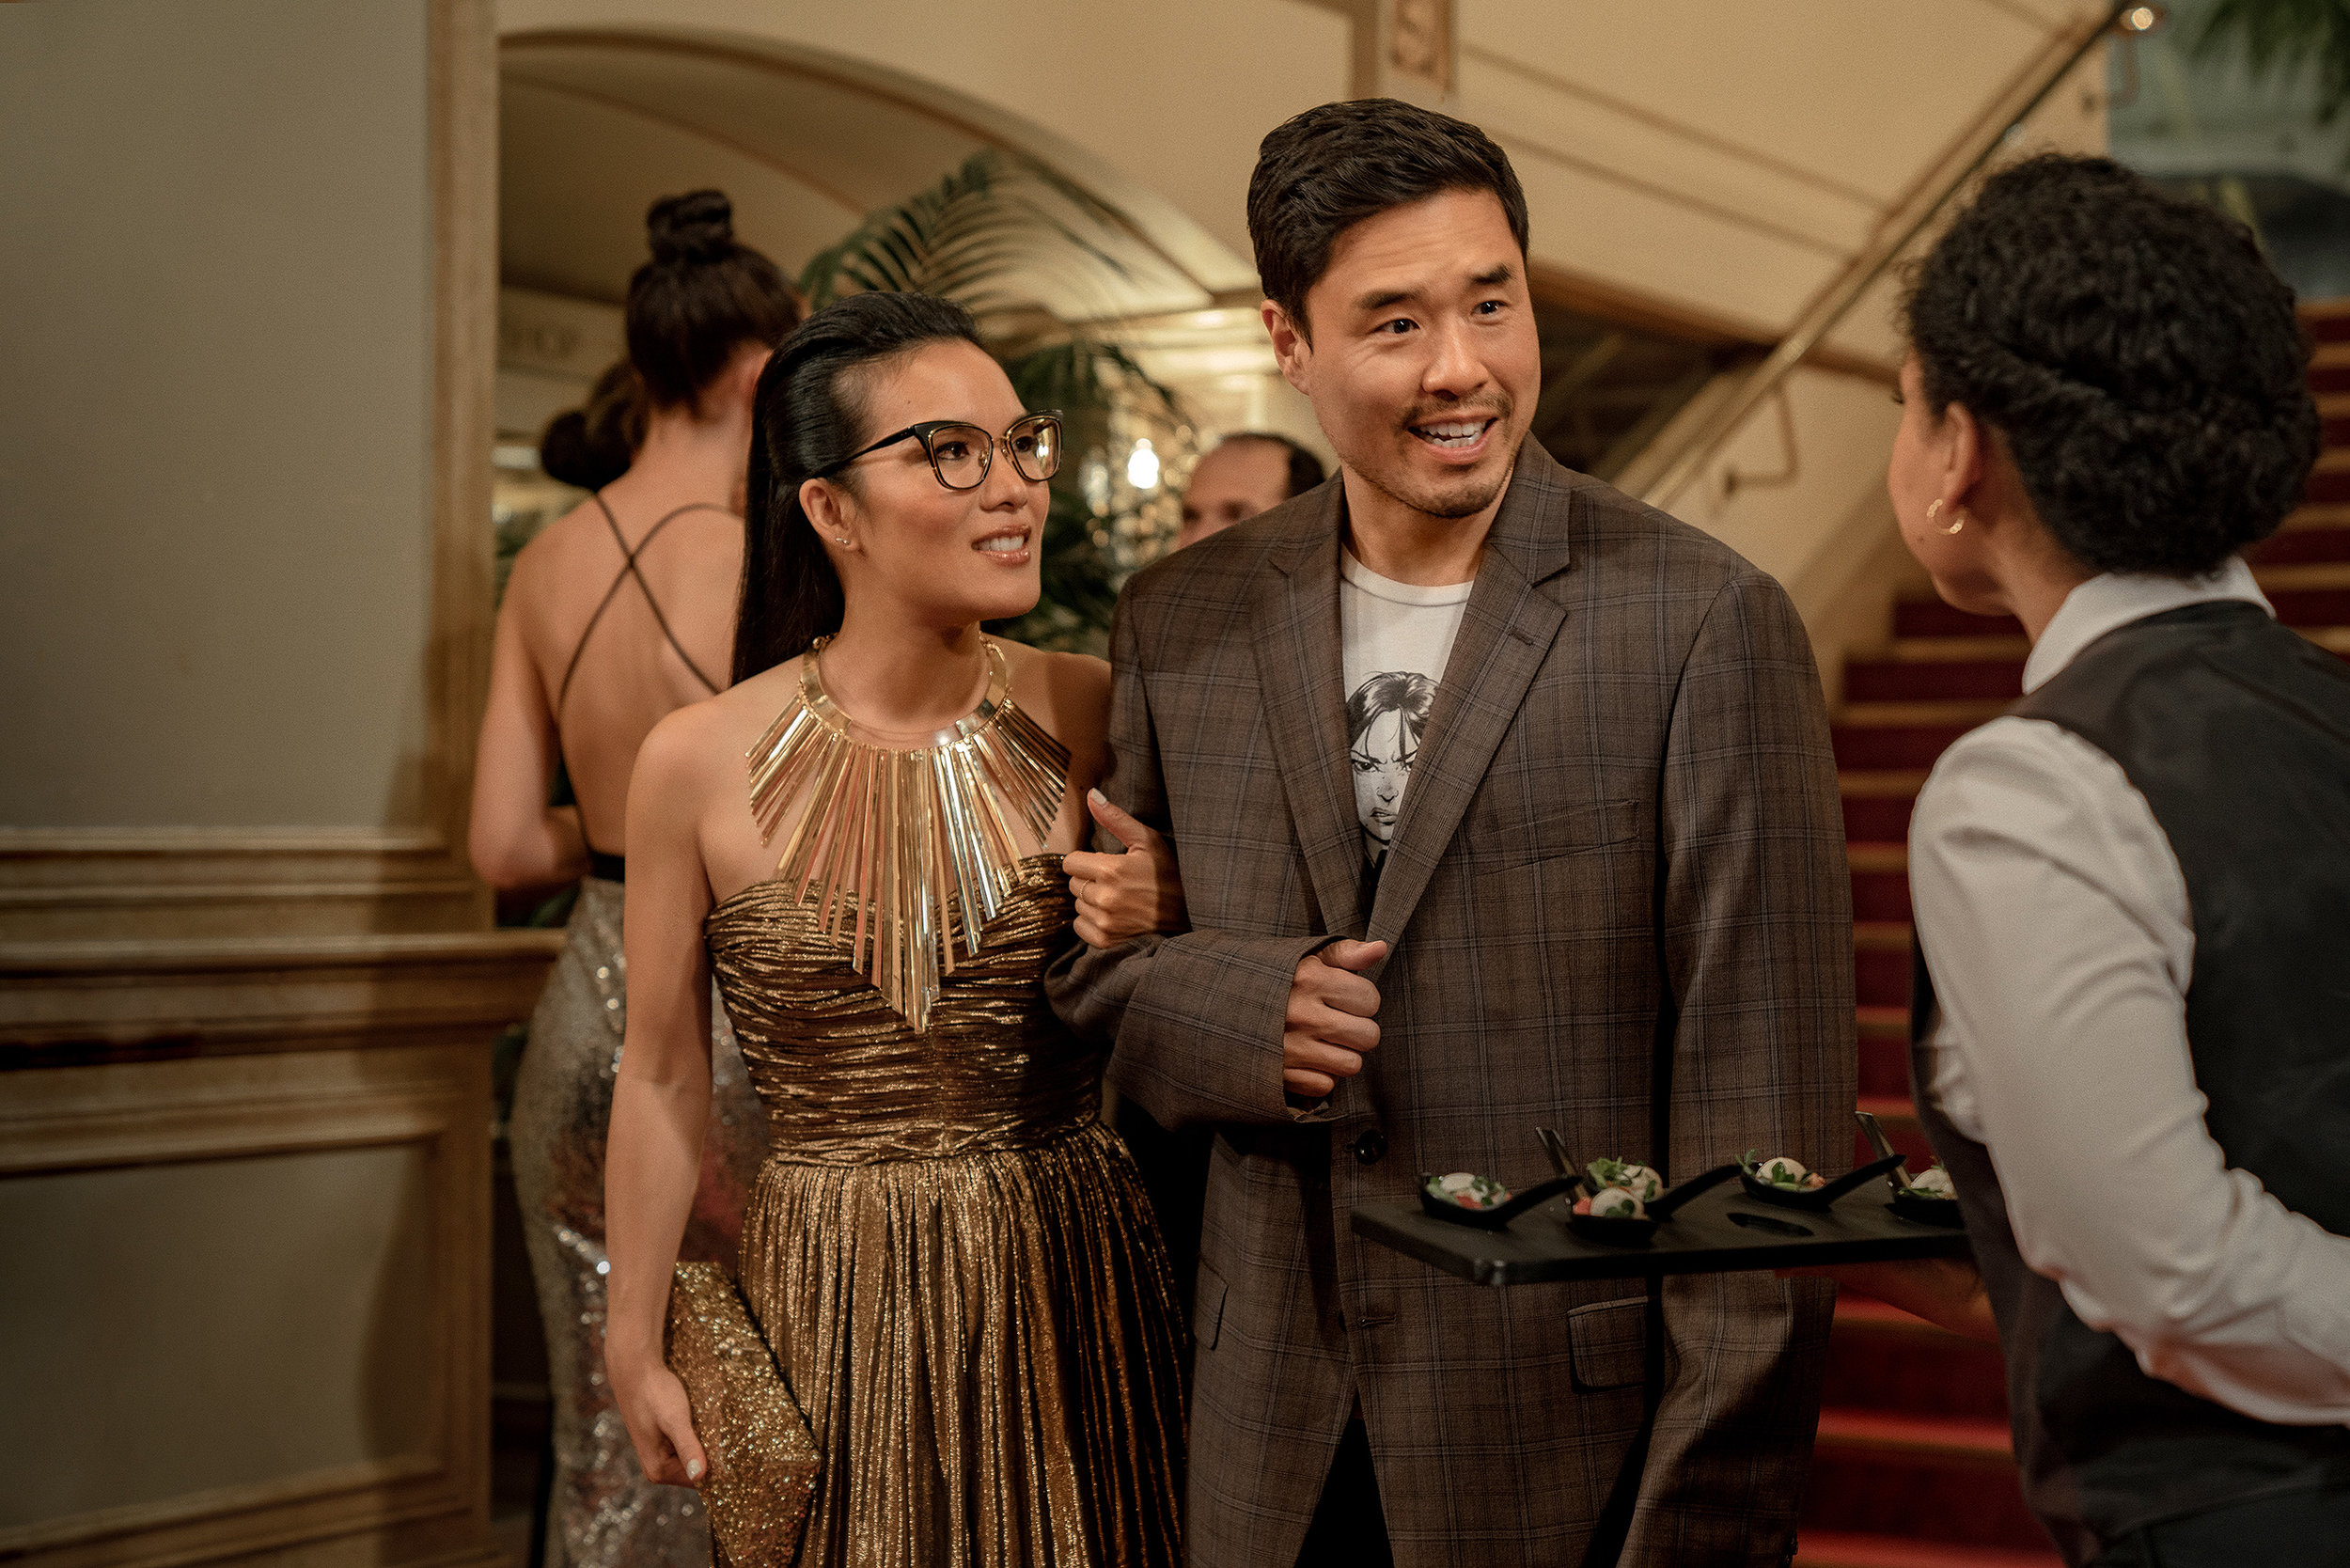 MOVIE REVIEW: Always Be My Maybe — Every Movie Has a Lesson